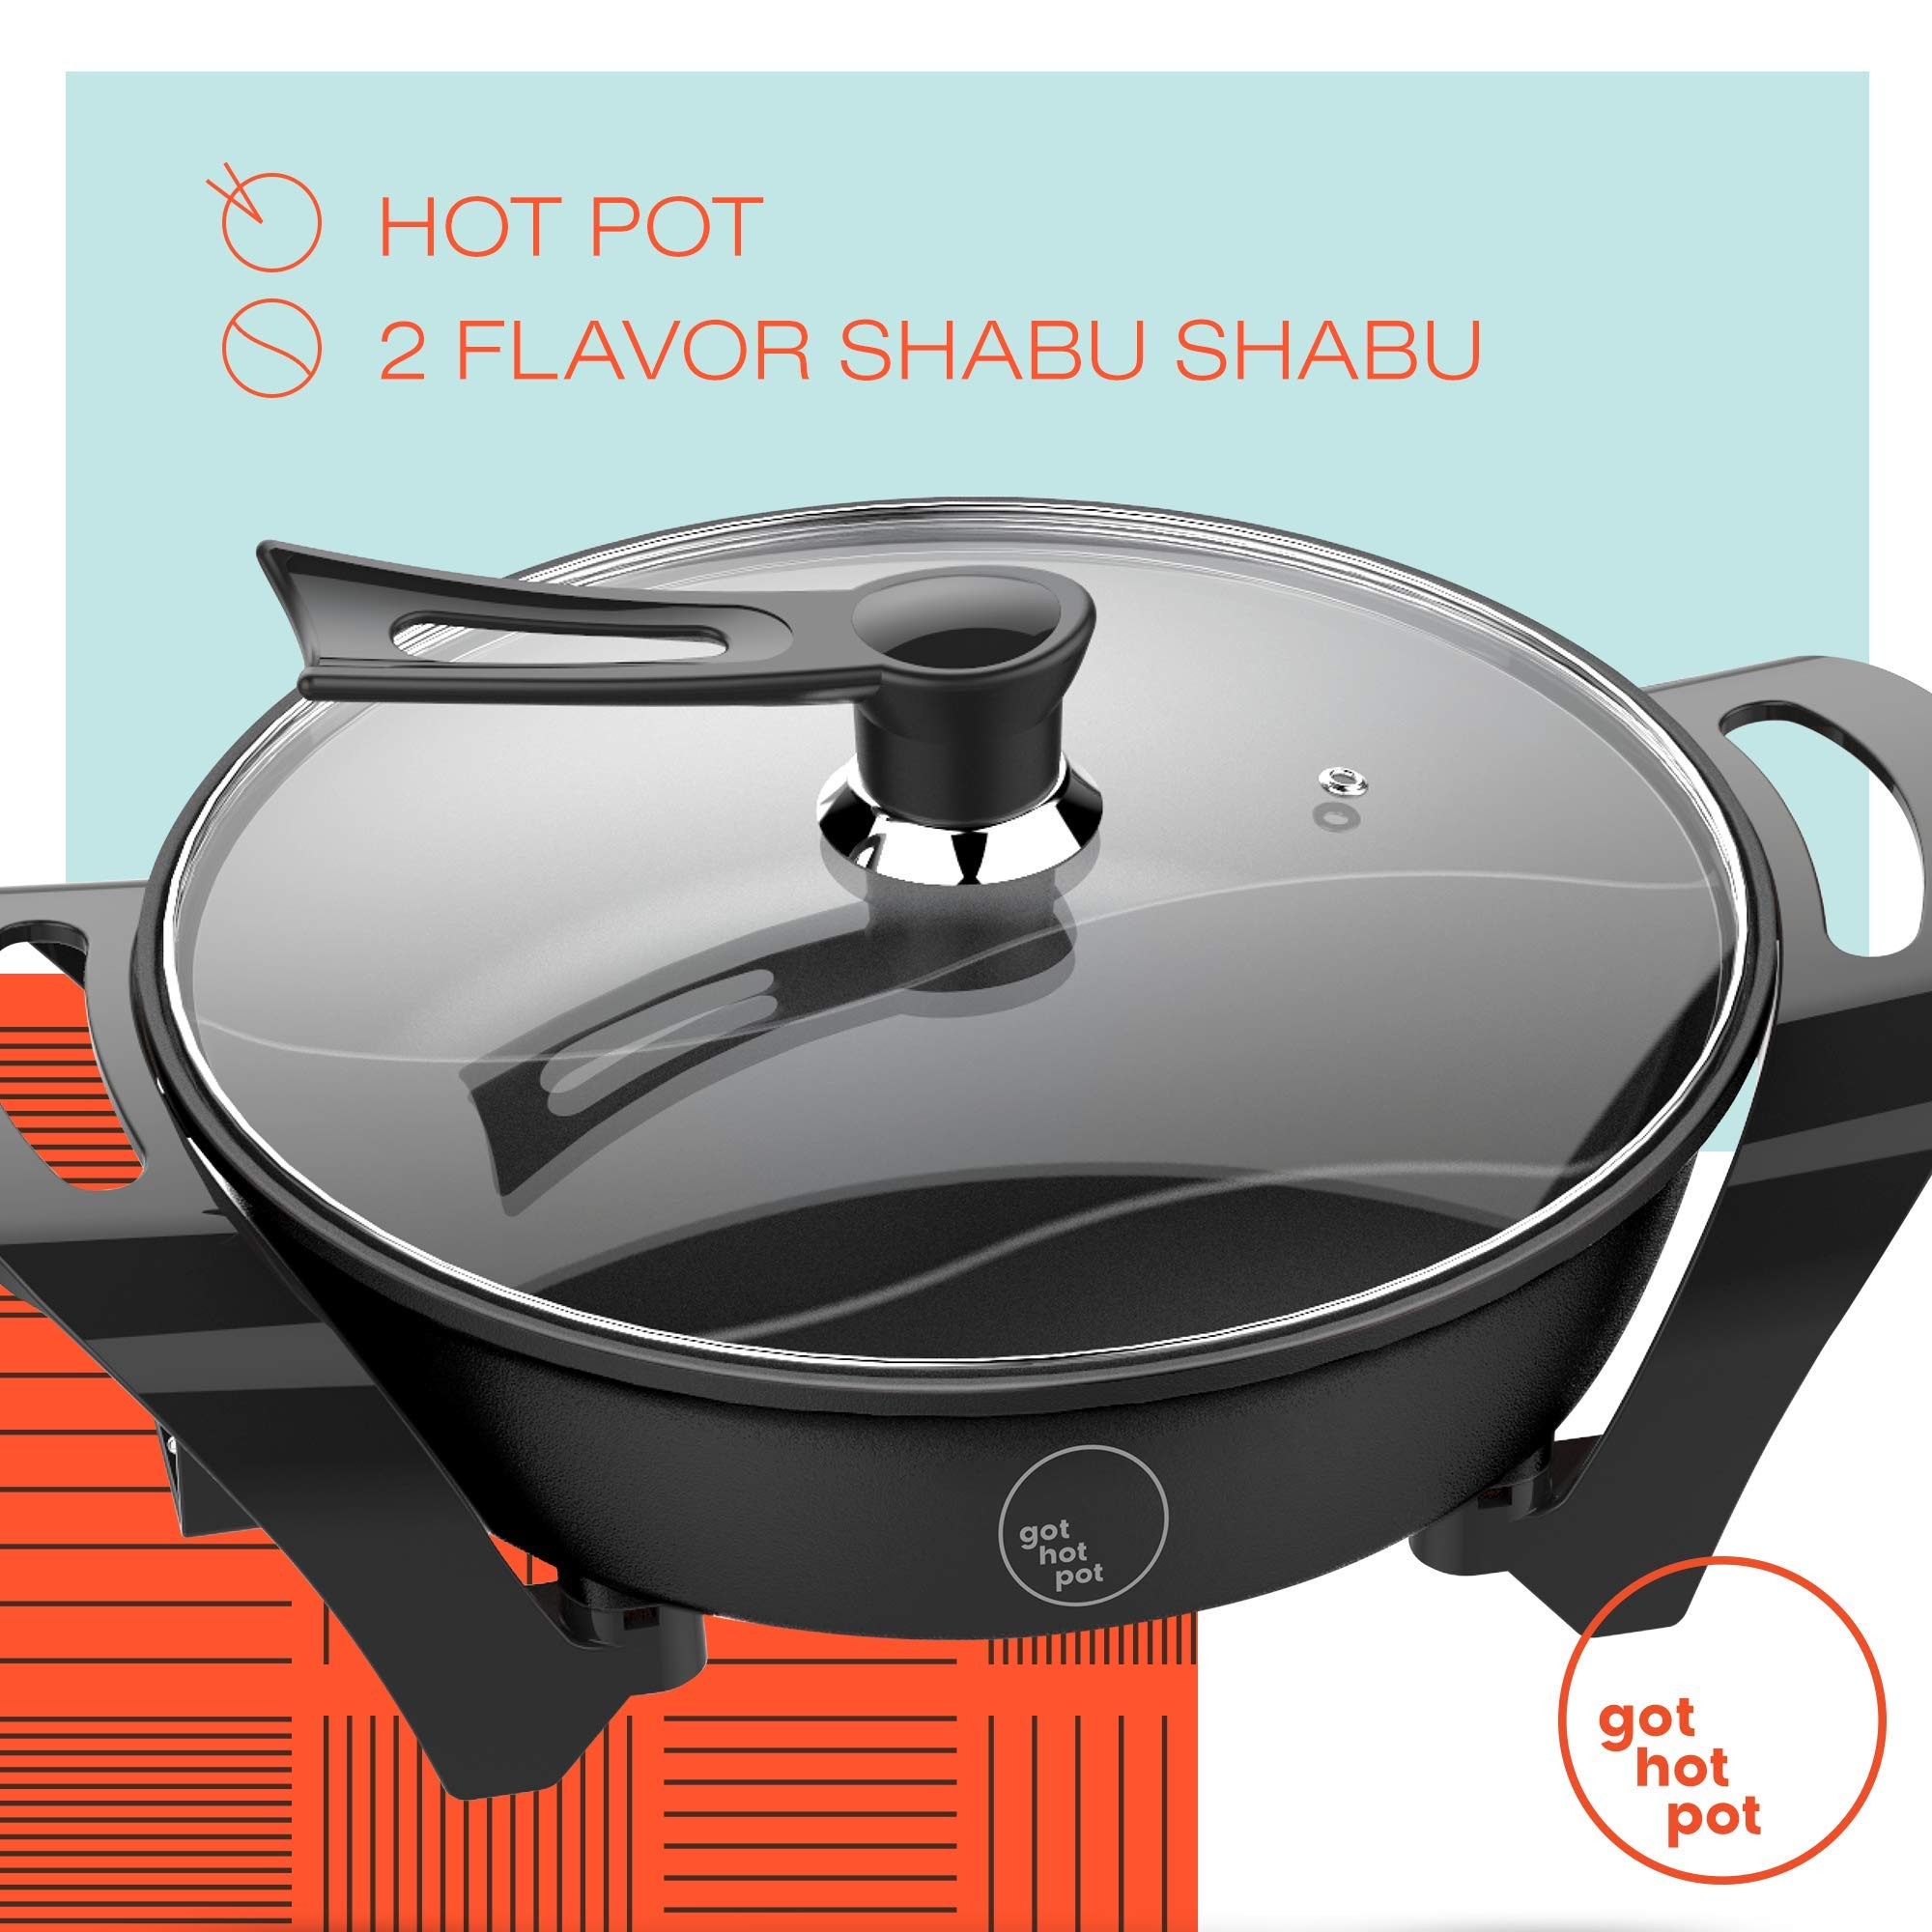 GOT HOT POT Electric Indoor Shabu Shabu Hot Pot with Internal Divider for 2 Flavor Experience Hot Pot Cooker | Non Stick Surface with Heat Control Unit | Indoor and Outdoor use by Got Hot Pot